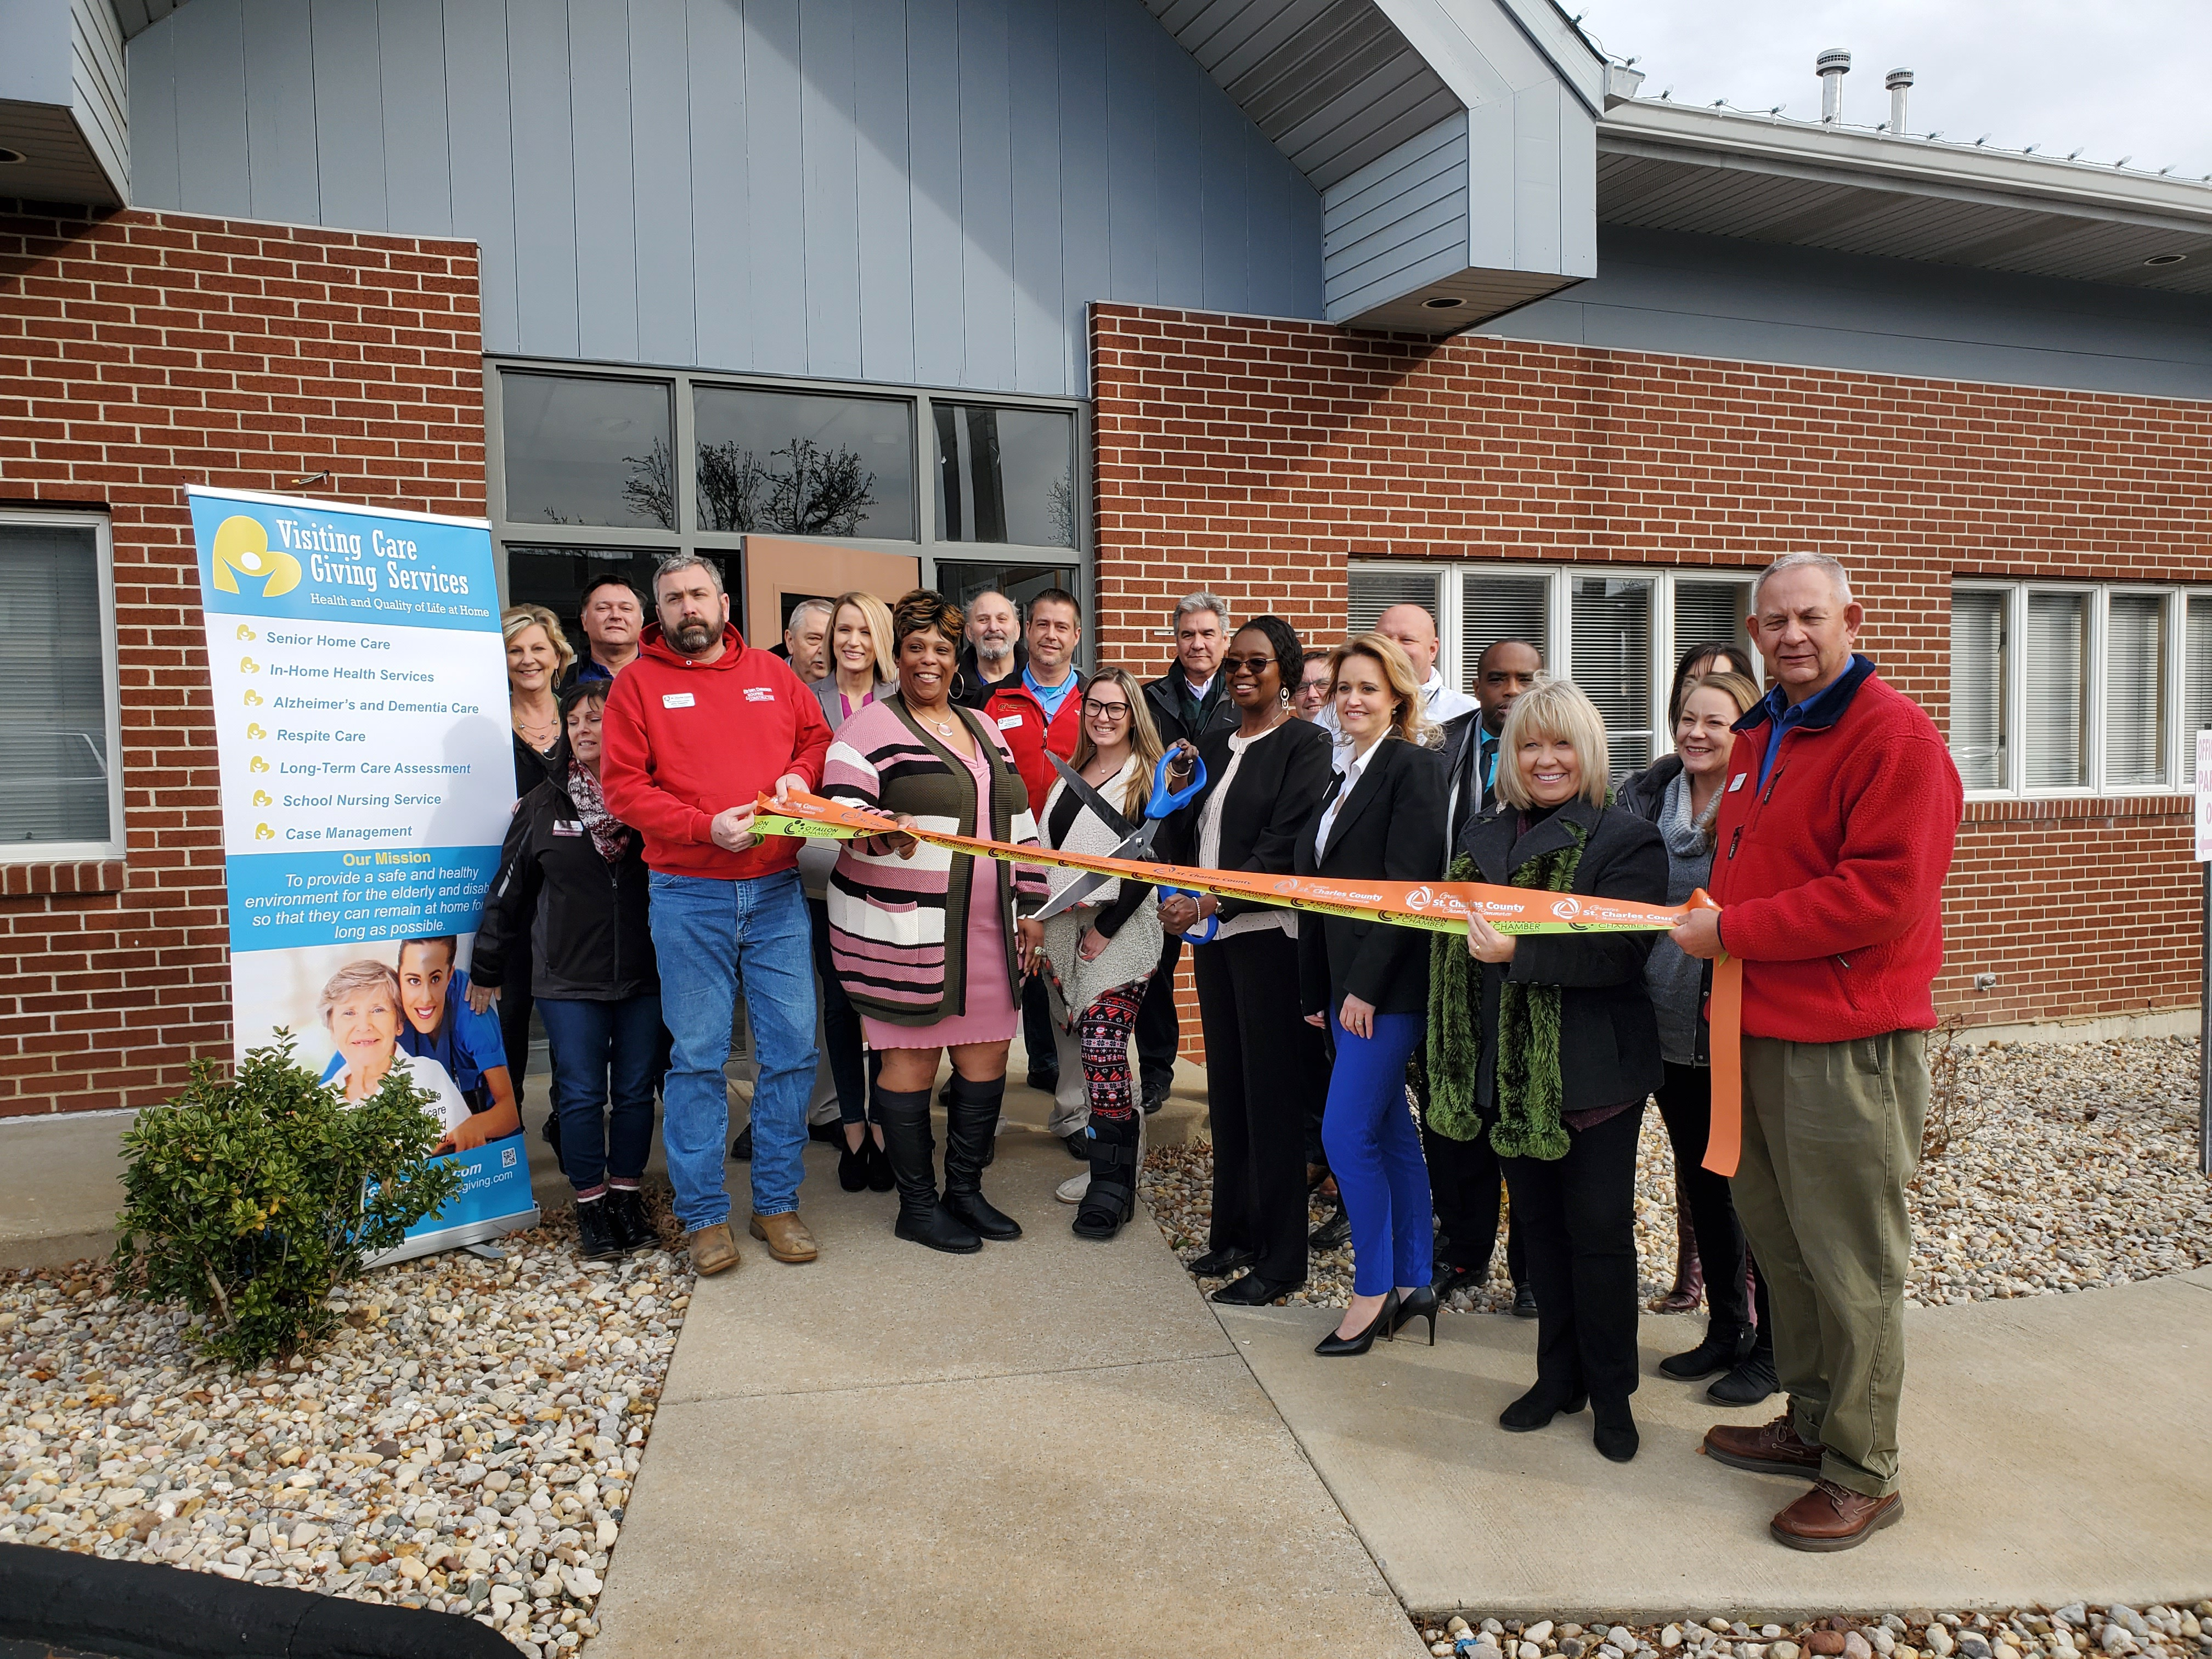 Visiting Care Giving Services Celebrates  Grand Opening with Ribbon Cutting